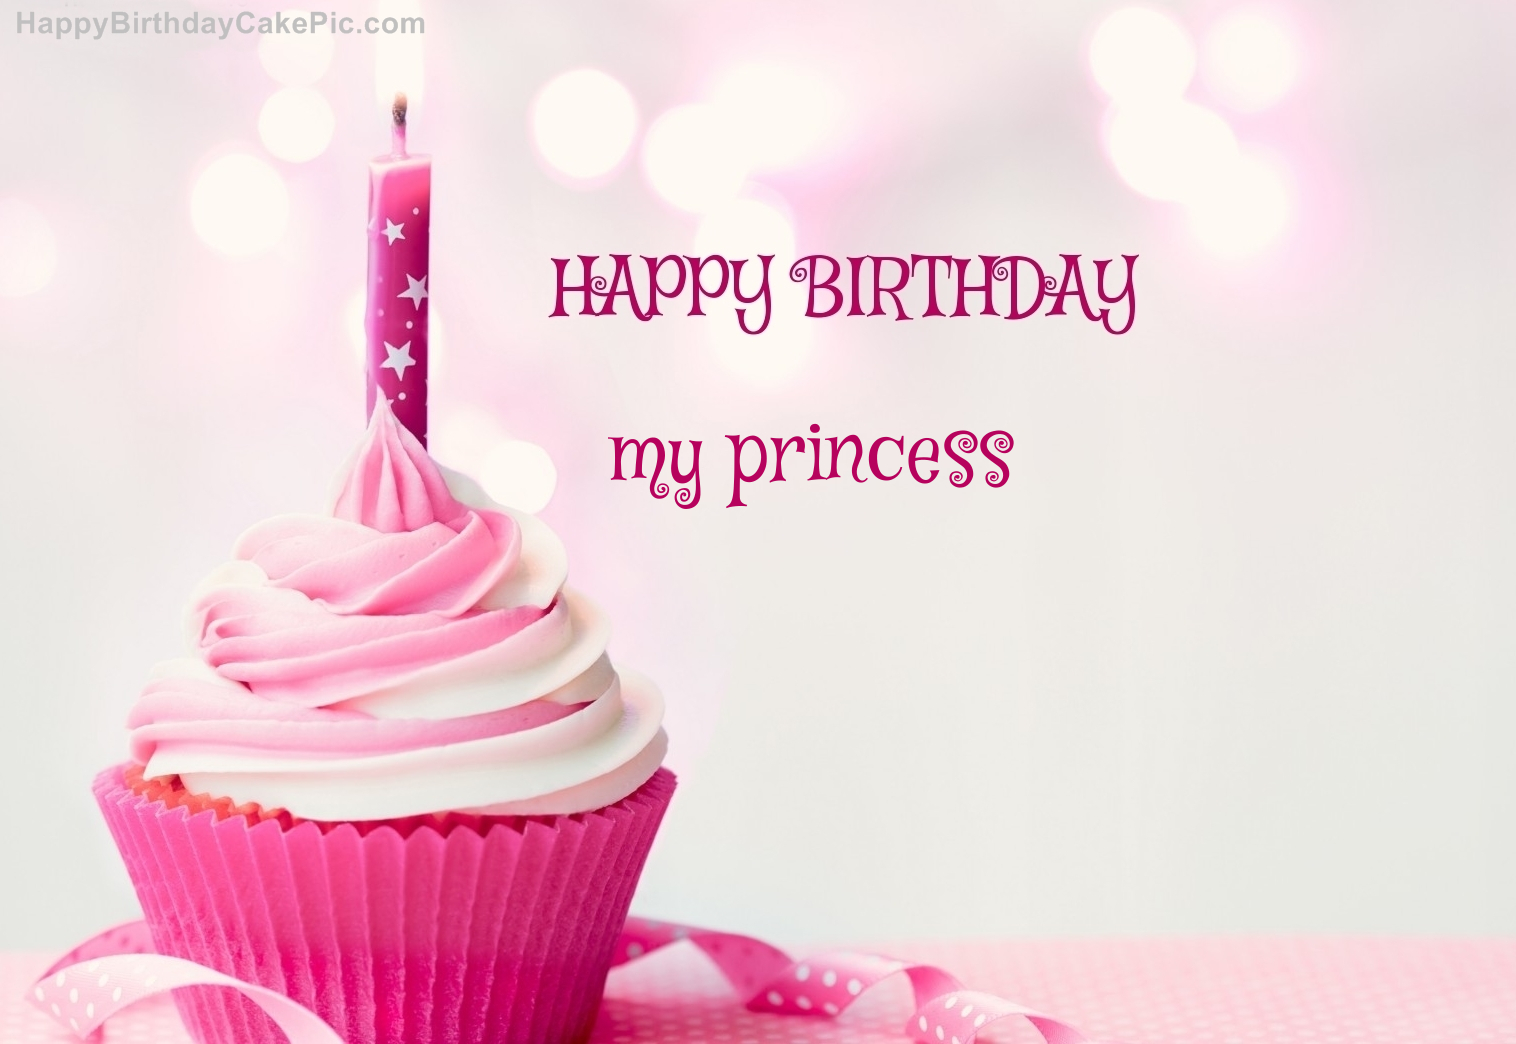 Happy Birthday Princess Cake With Candles ~ Happy birthday cupcake candle pink cake for my princess